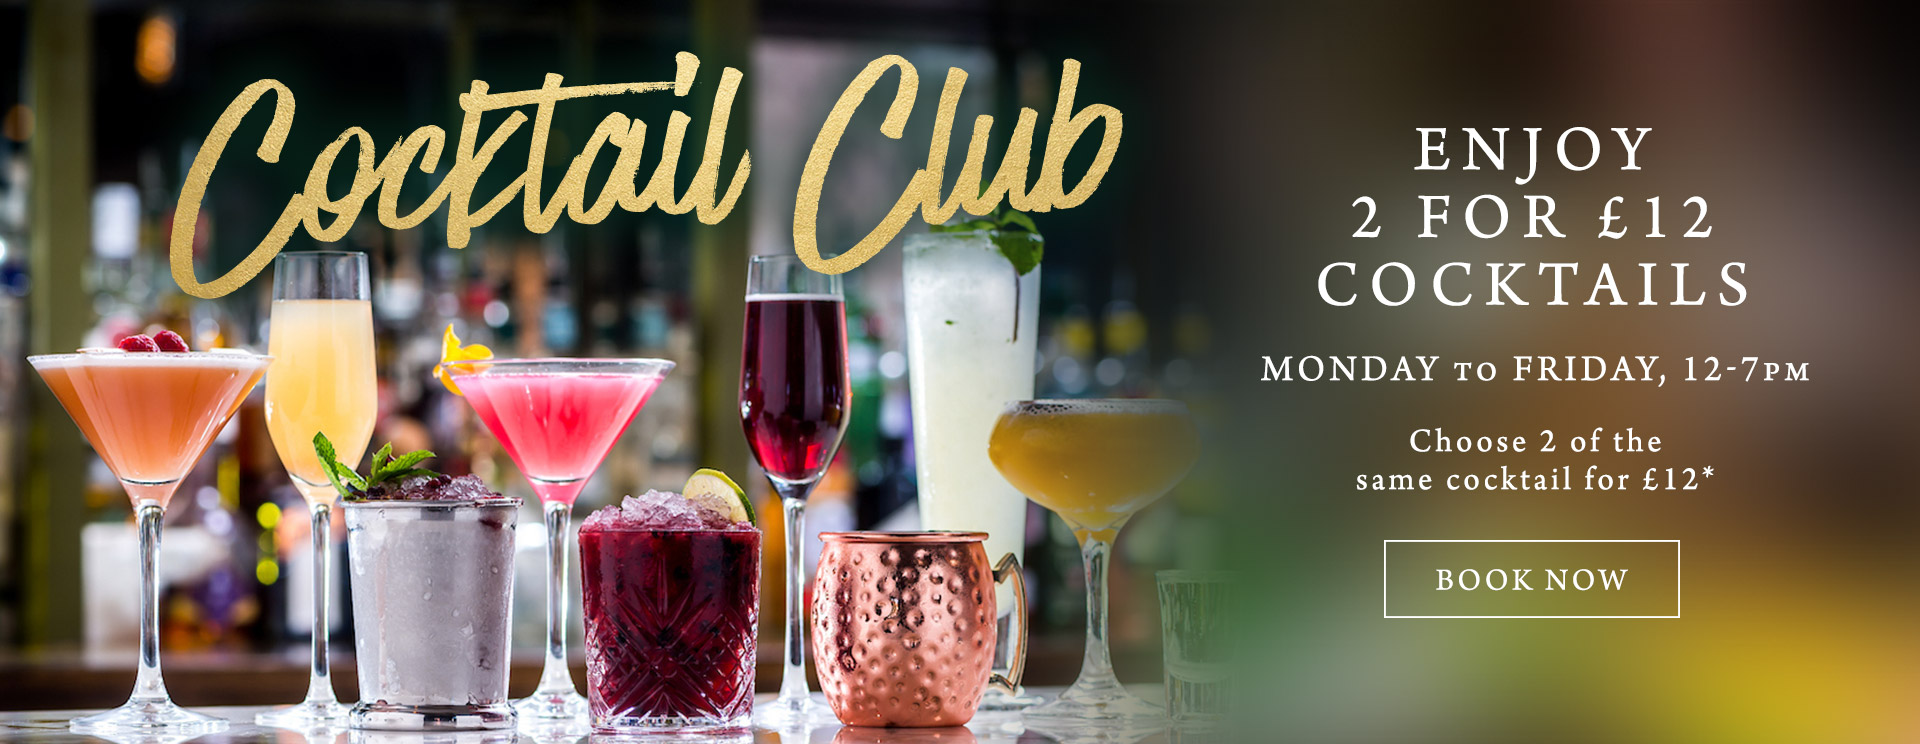 2 for £12 cocktails at The Ship Inn